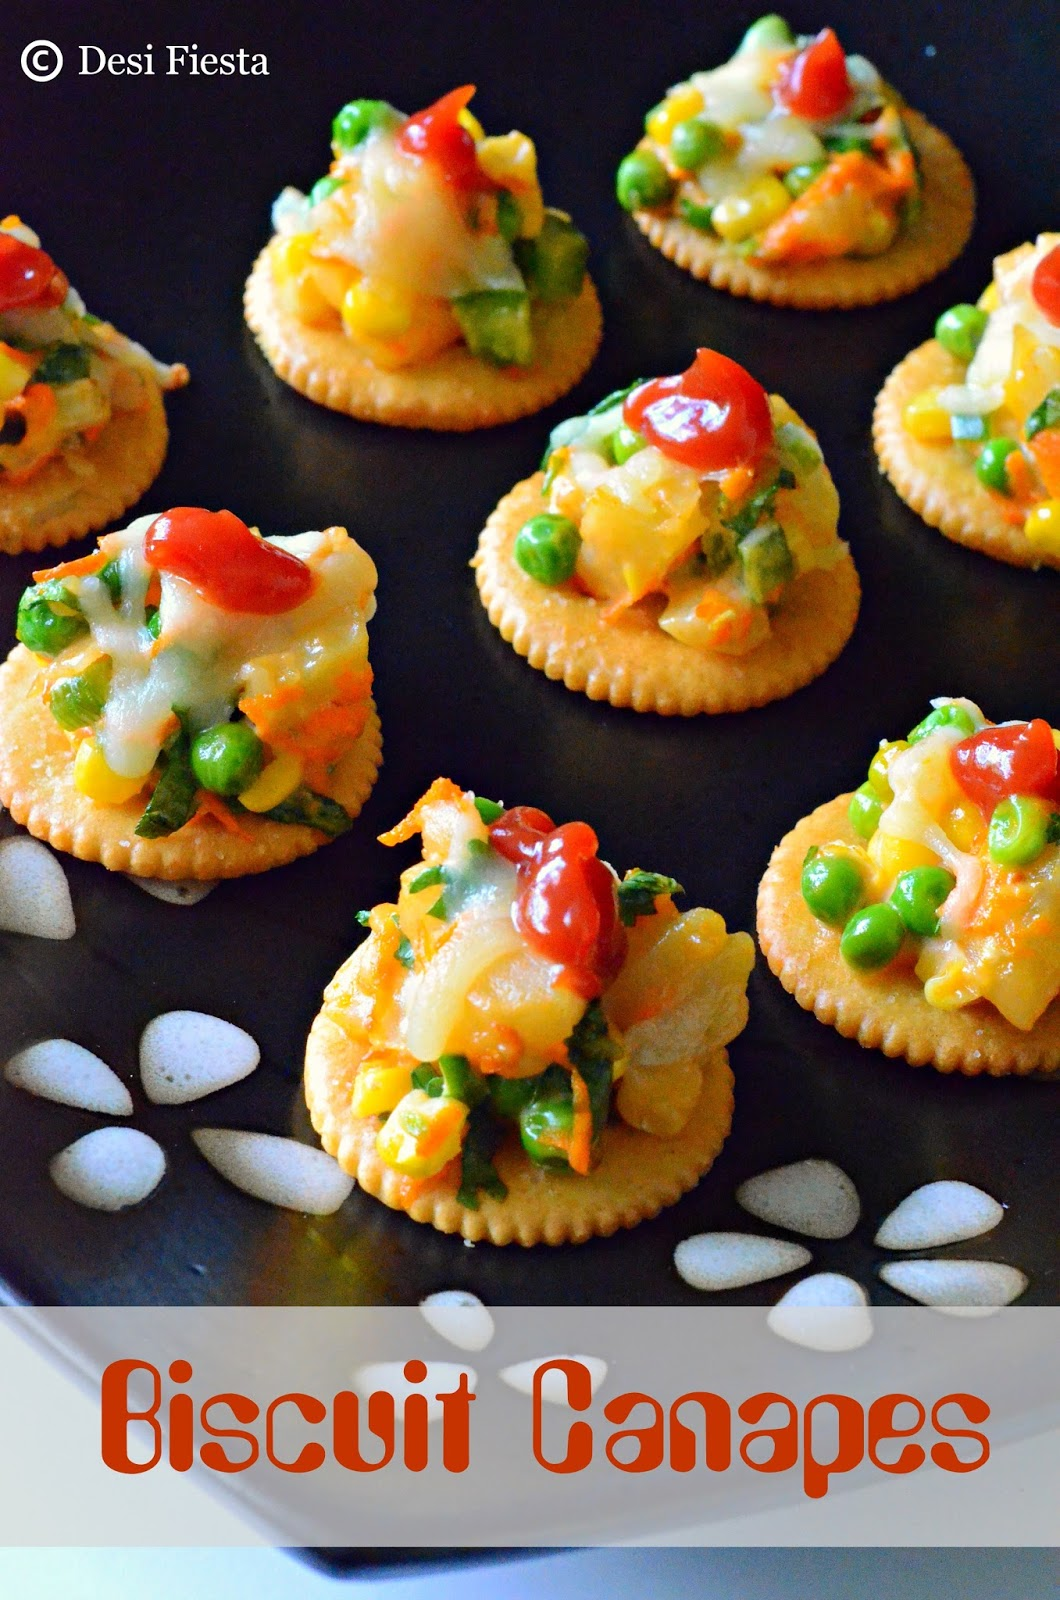 biscuit canapes with vegetable topping monaco canapes recipes how to make biscuit canapes. Black Bedroom Furniture Sets. Home Design Ideas